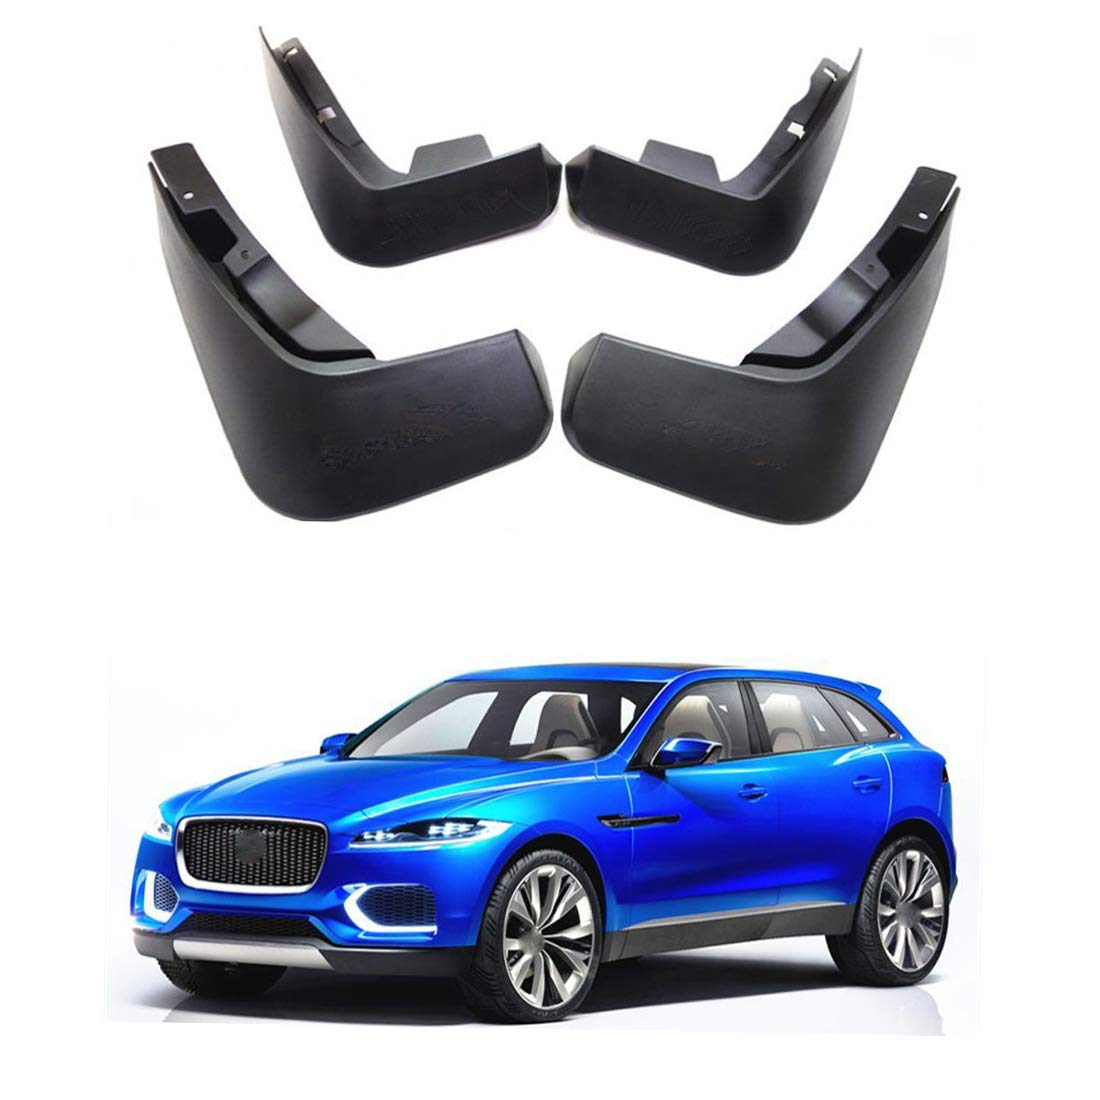 Richdoo New OEM Set Splash Guards Mud Guards Mud Flaps FOR F-PACE 2015-2018